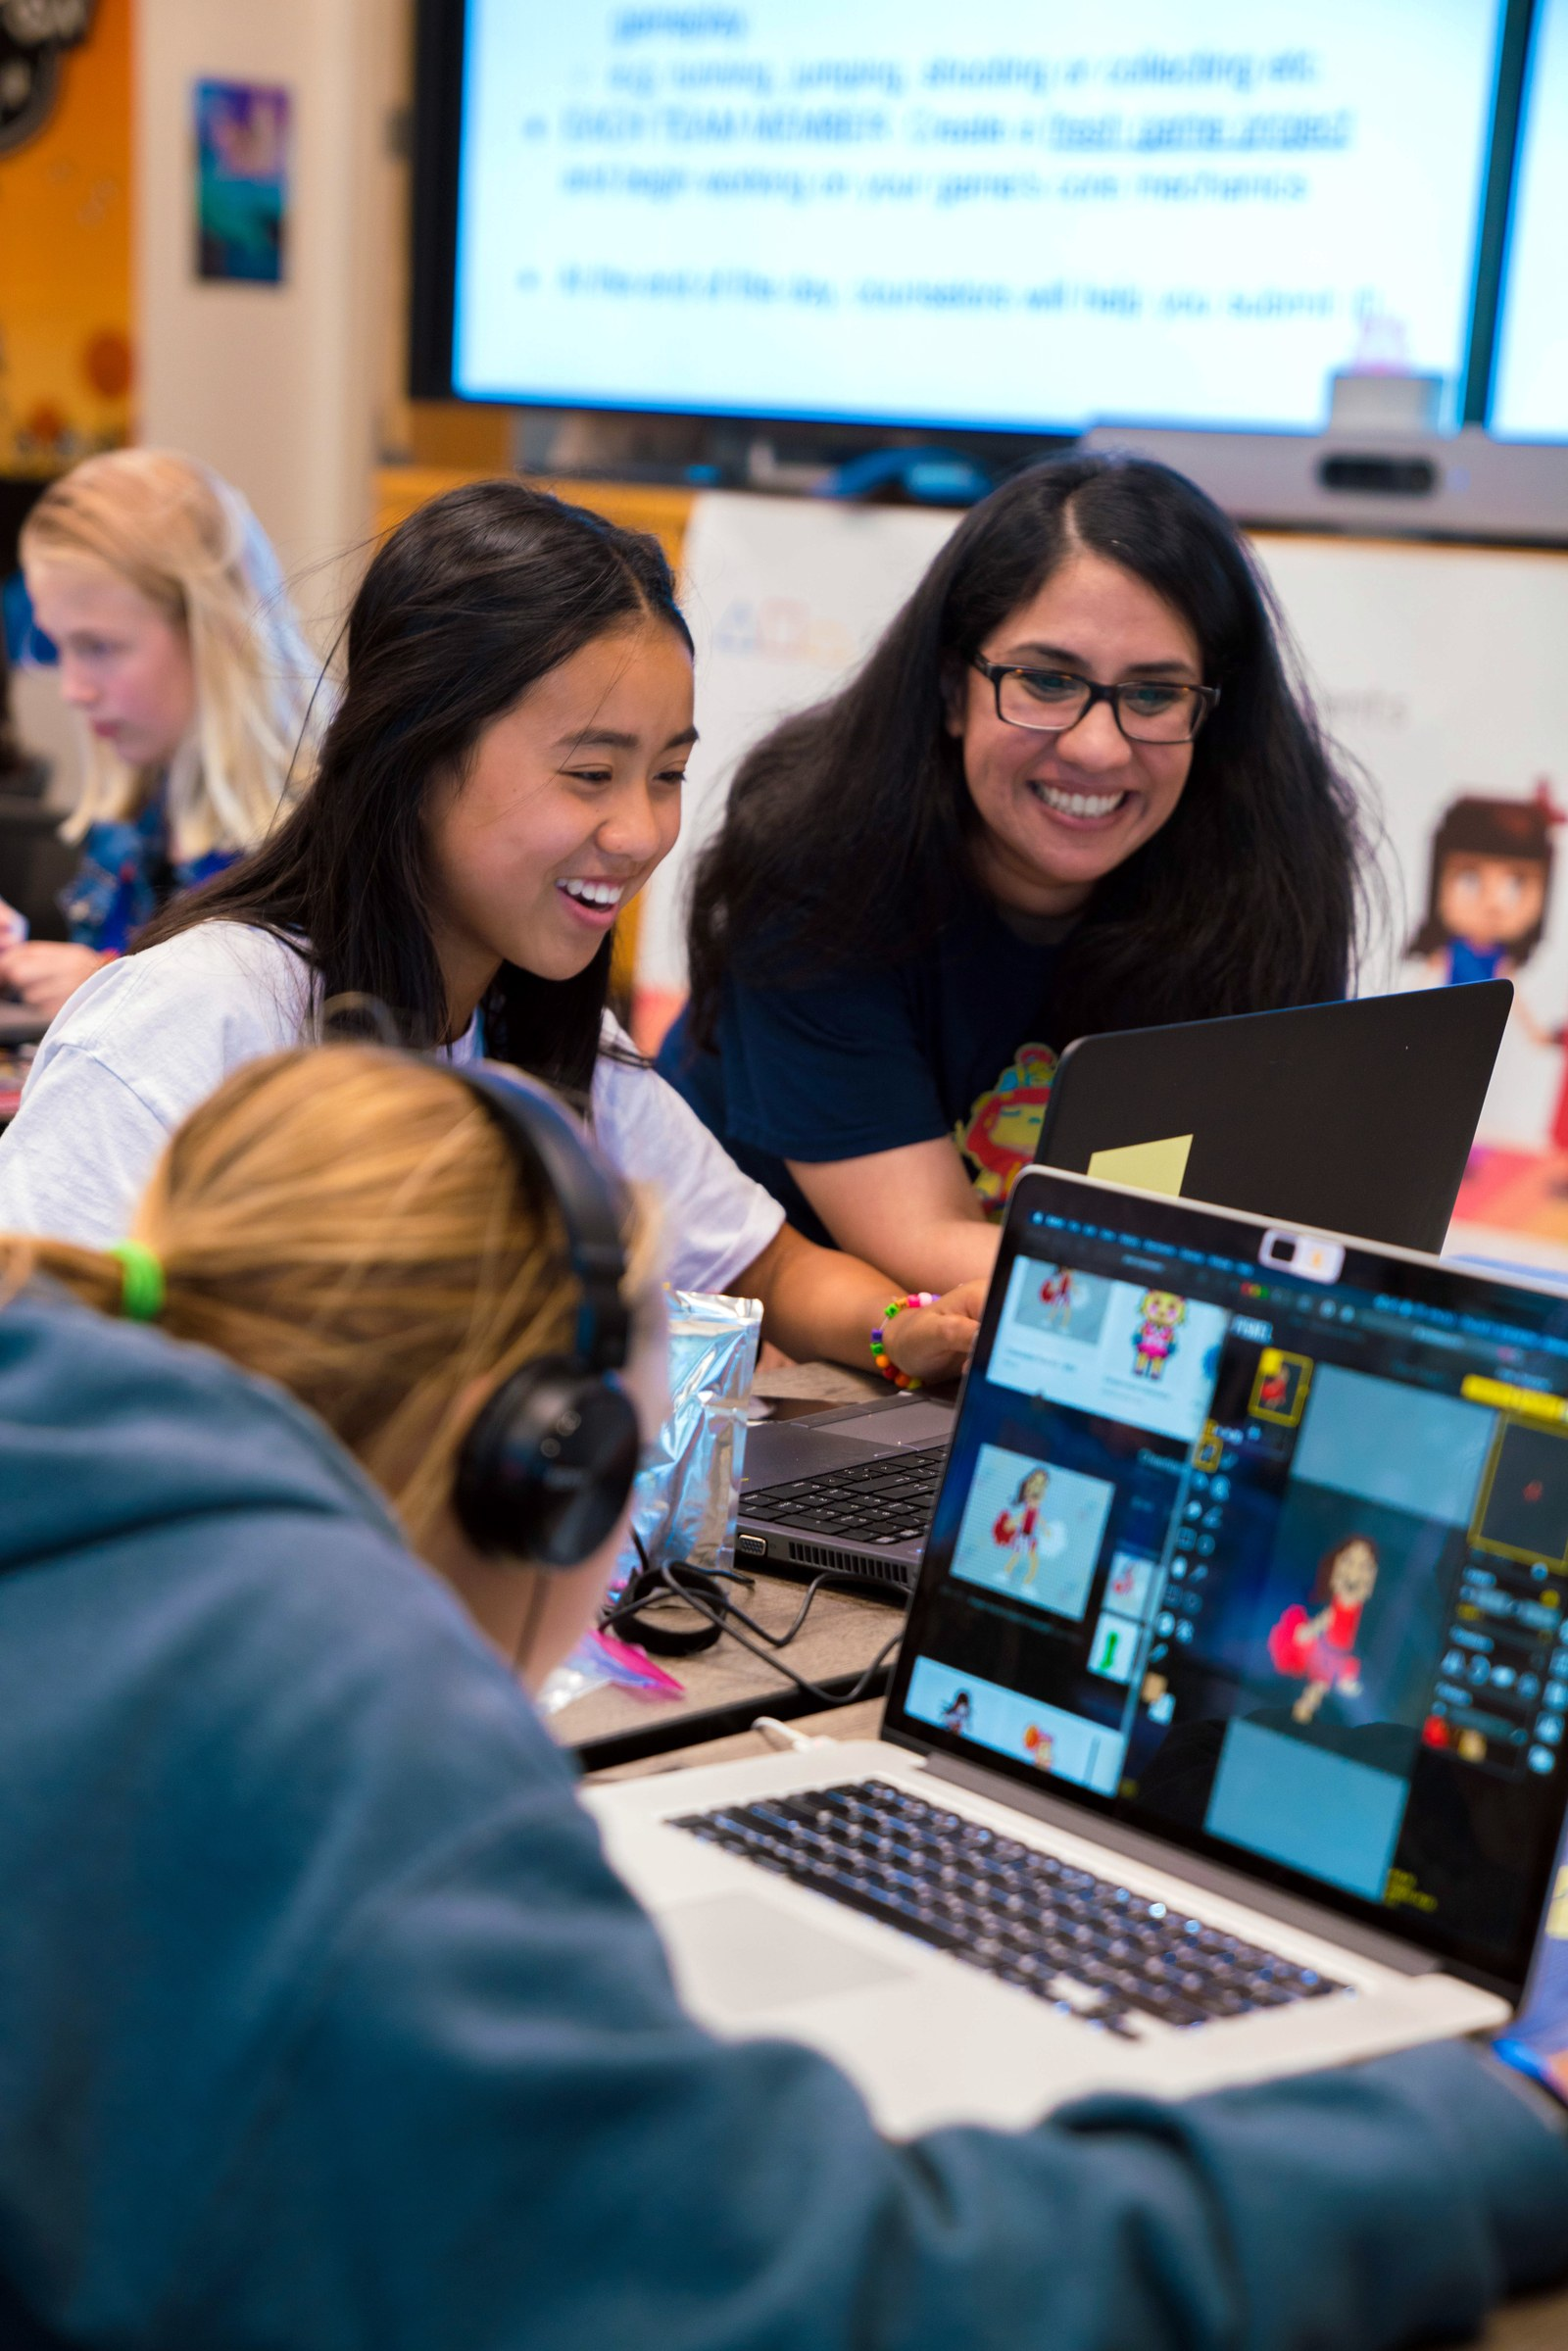 image shows a young woman smiling while the founder of Girls Make Games looks on over her left shoulder. Other girls are visible in the background and in the extreme foreground. They are working intently at laptops.